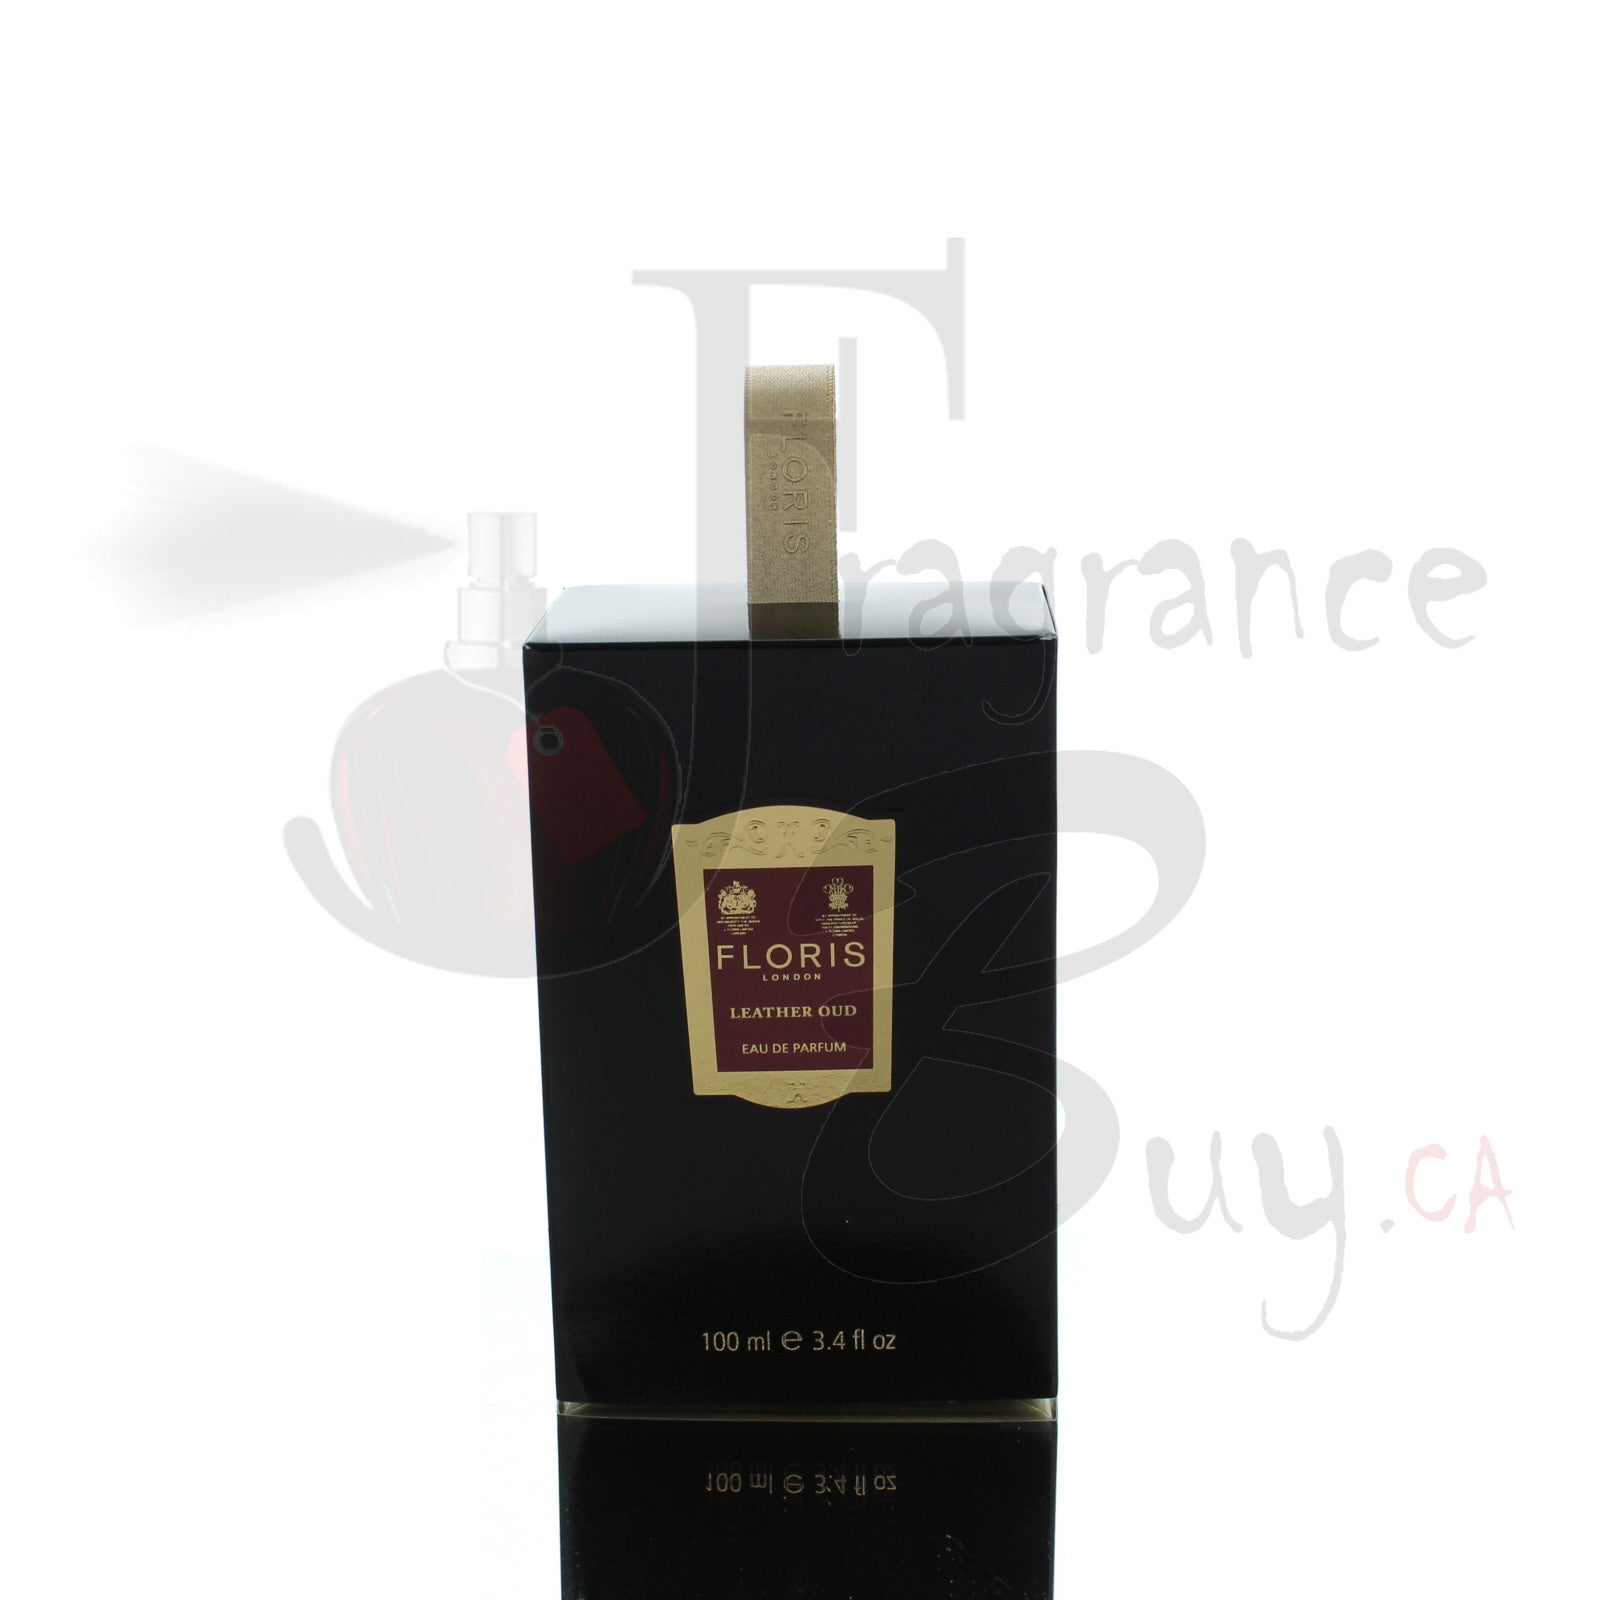 Floris Leather Oud For Man/Woman